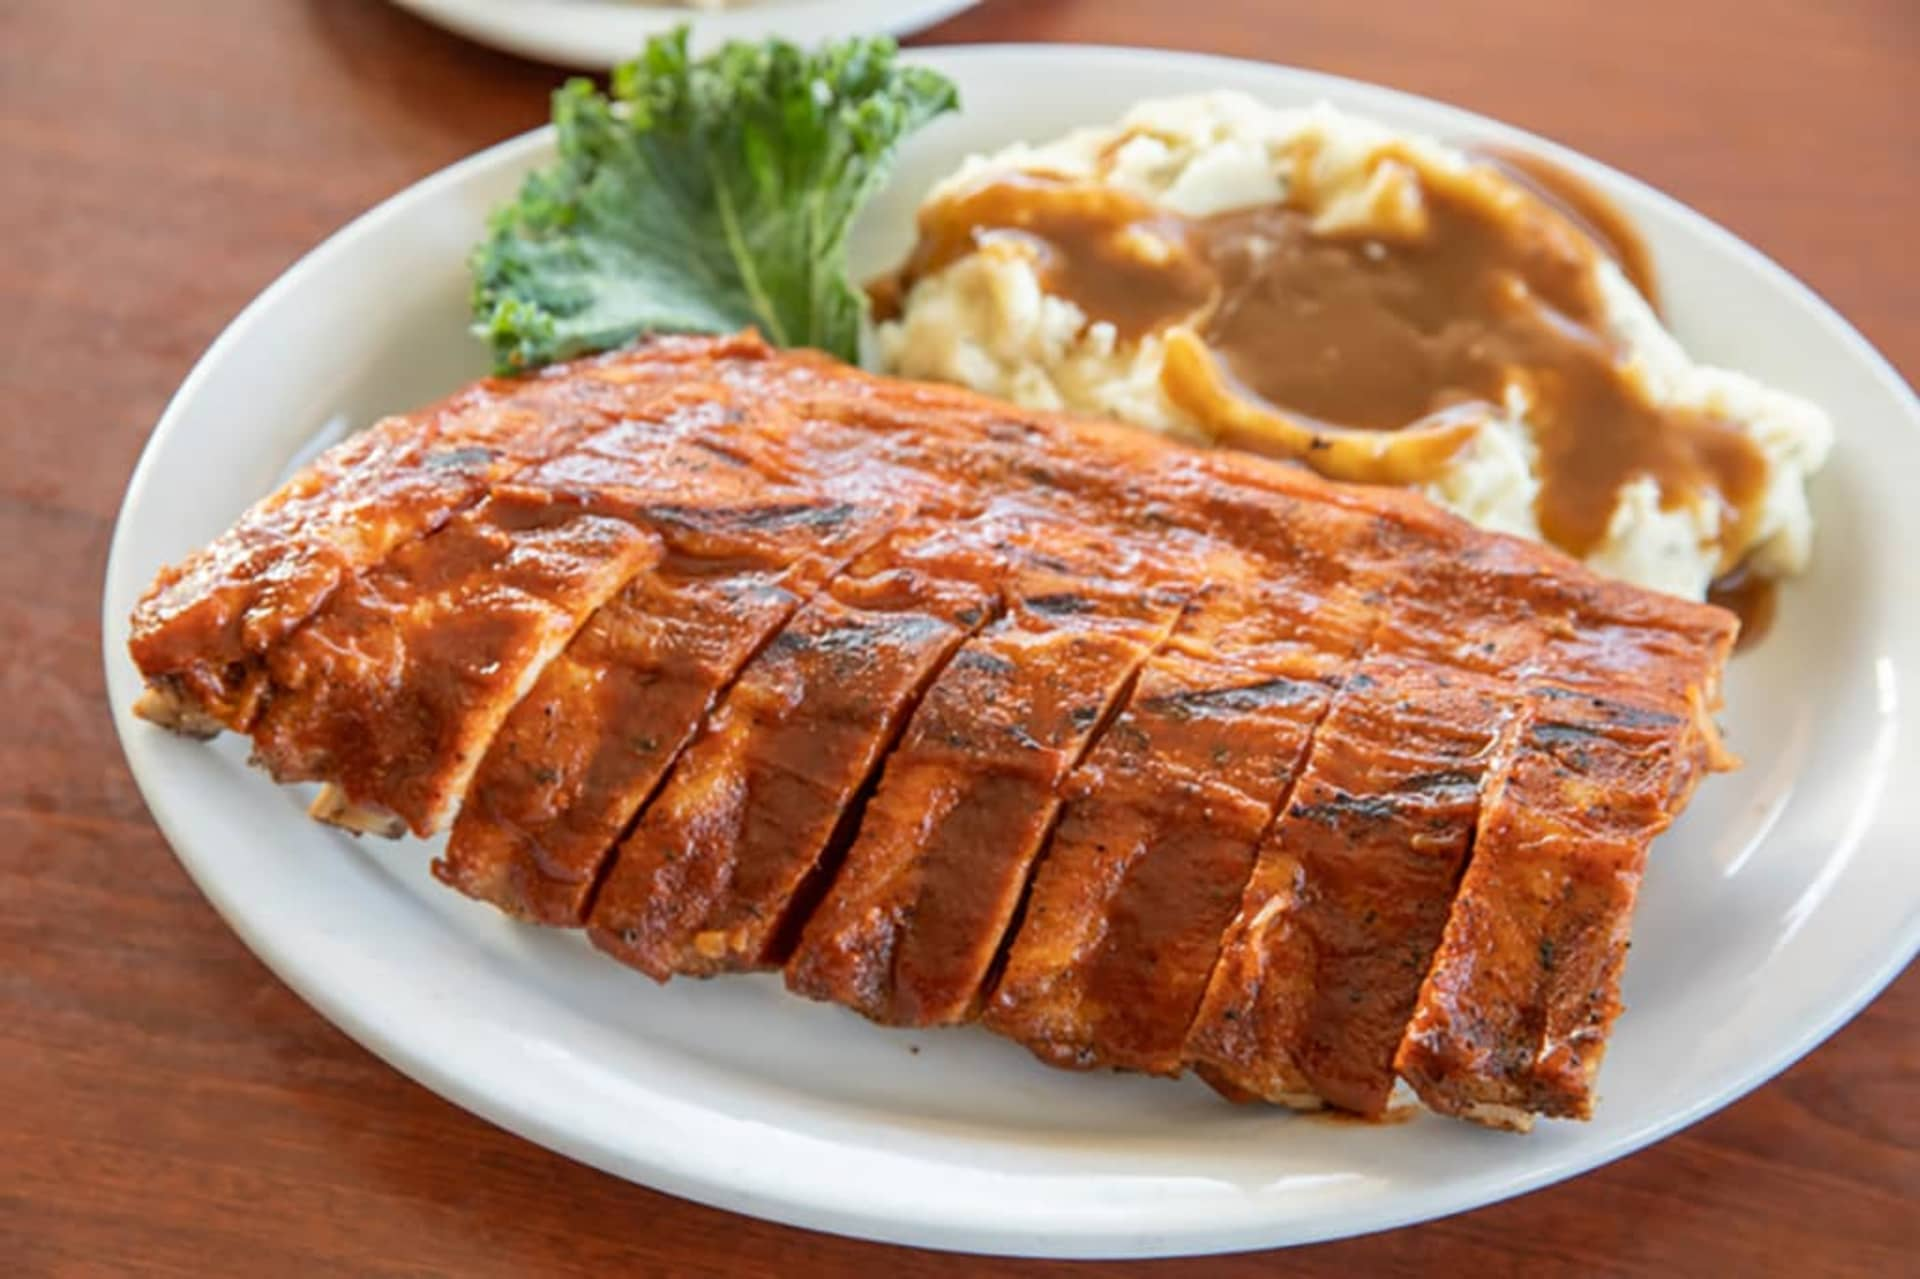 Monday All-You-Can-Eat-Ribs